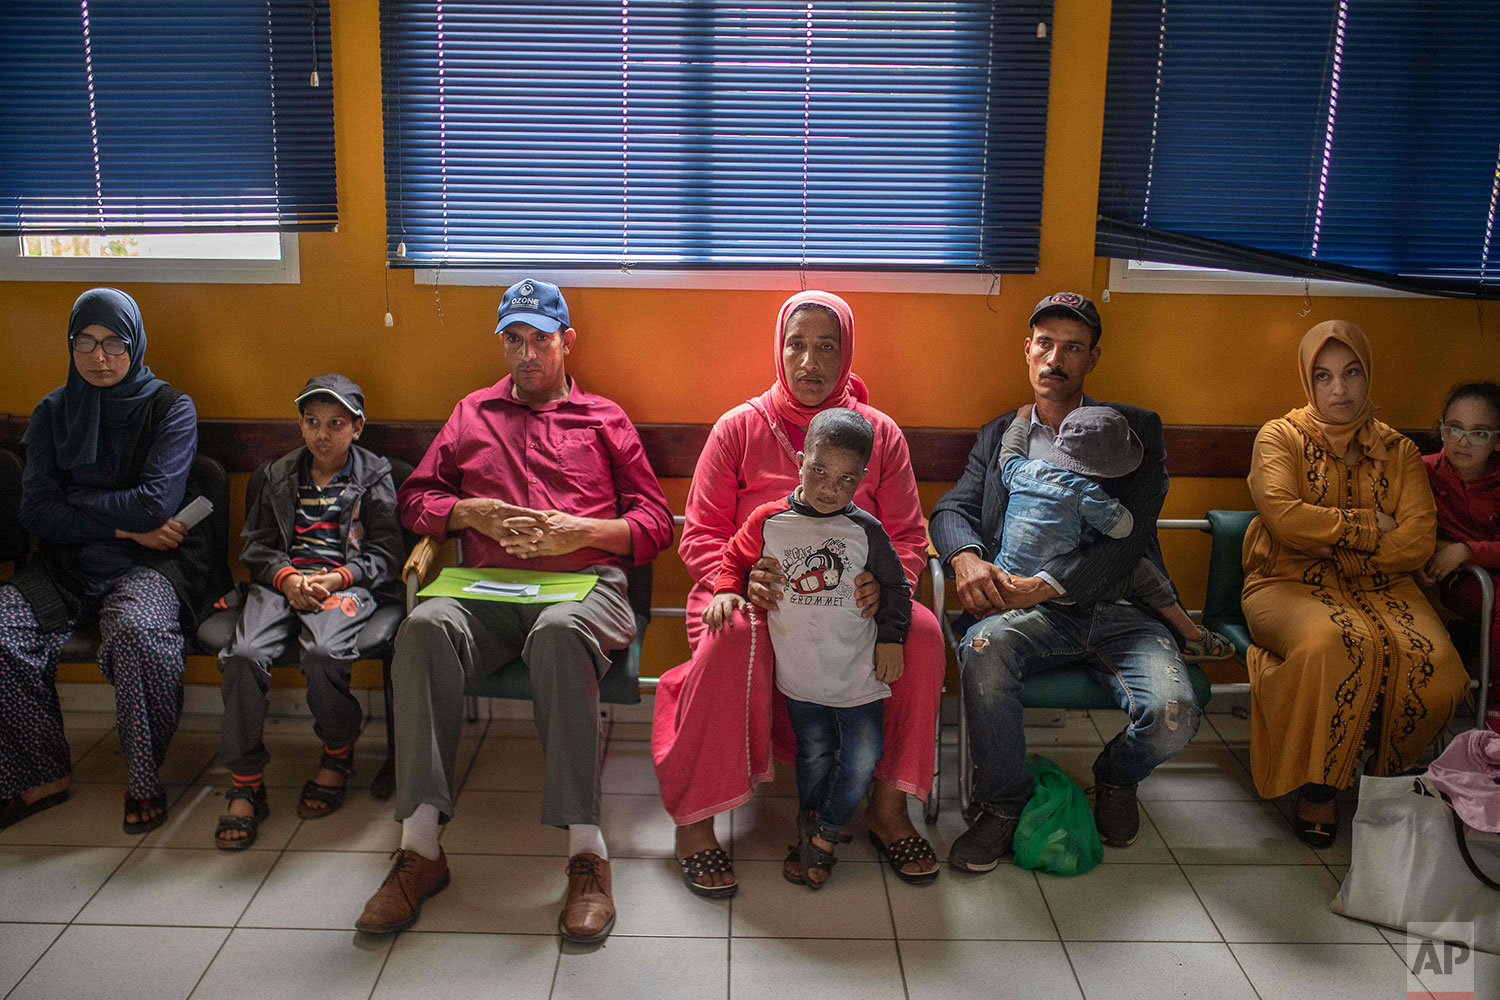 In this Wednesday, July 24, 2019 photo, families wait alongside their children affected by a rare disorder called xeroderma pigmentosum, or XP, inside a hospital in Casablanca, Morocco. (AP Photo/Mosa'ab Elshamy)